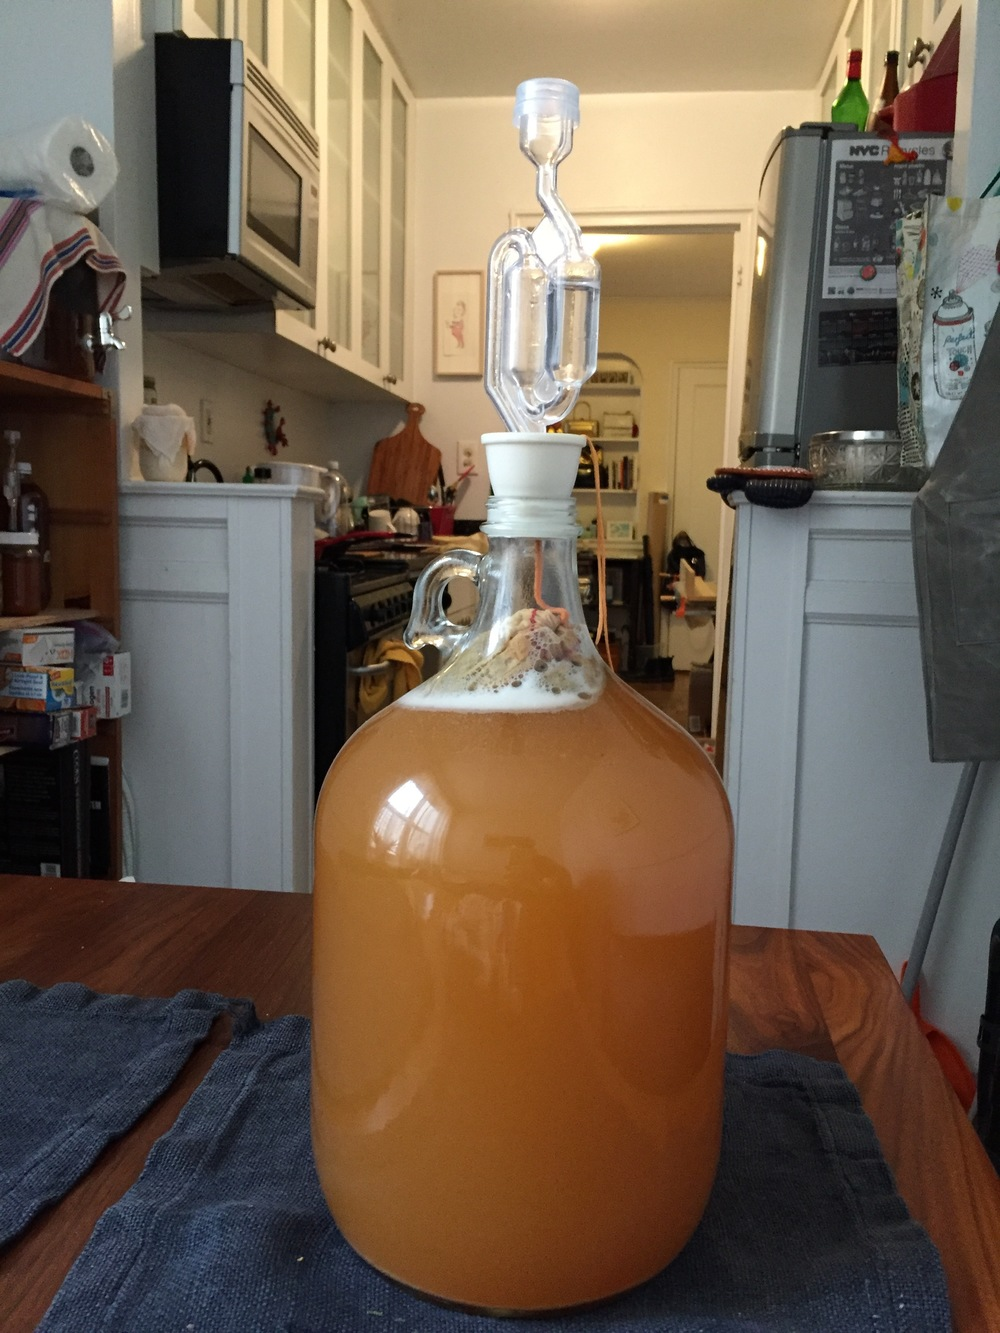 Ready for the growler w/ airlock. A bag of heather is flavoring it while fermenting. I'll remove the bag for capping.